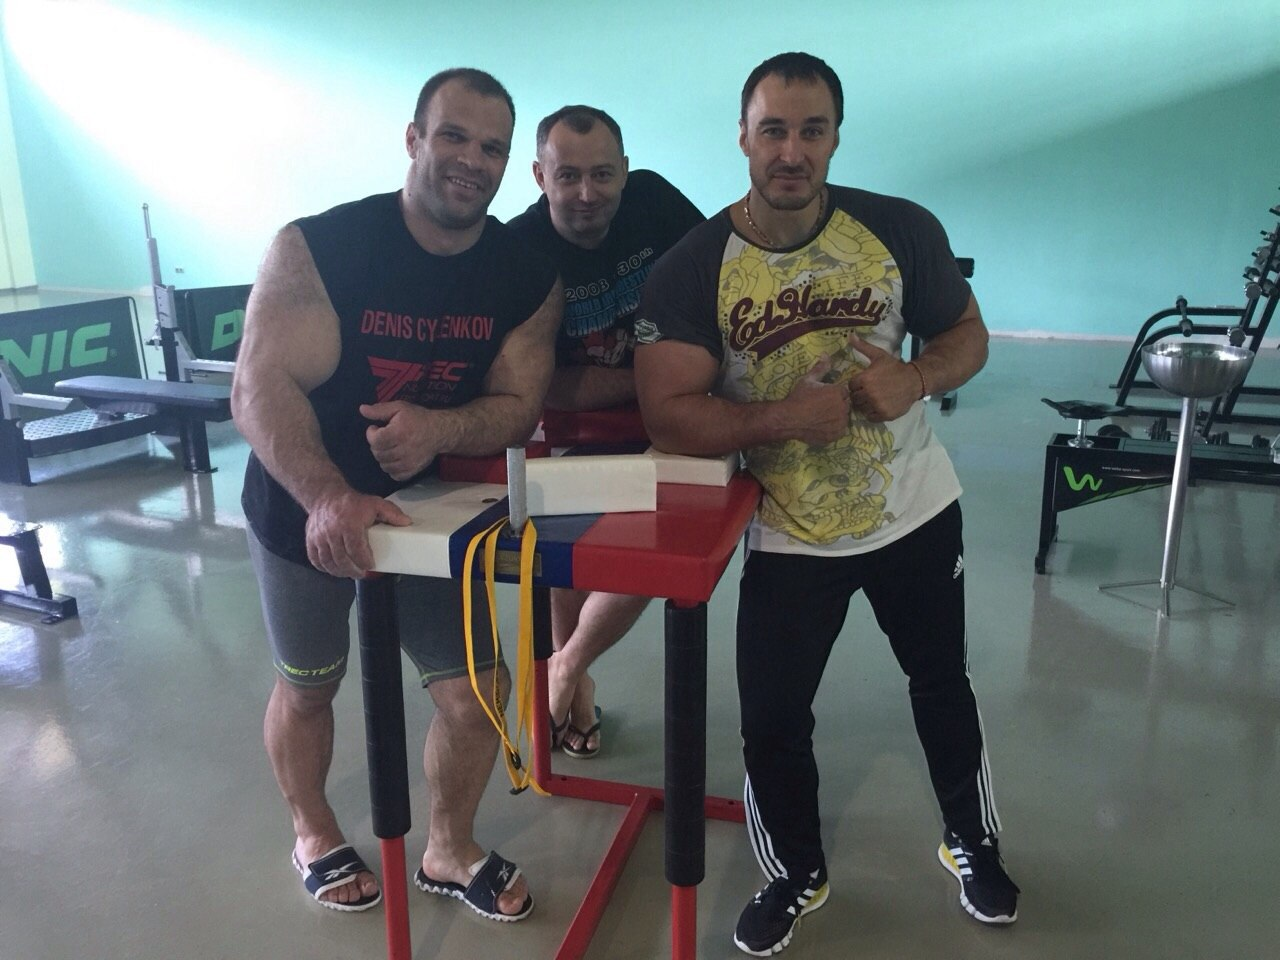 Denis Cyplenkov, Kote Razmadze, Alexey Voevoda │ Photo Source: Denis Tsyplenkov